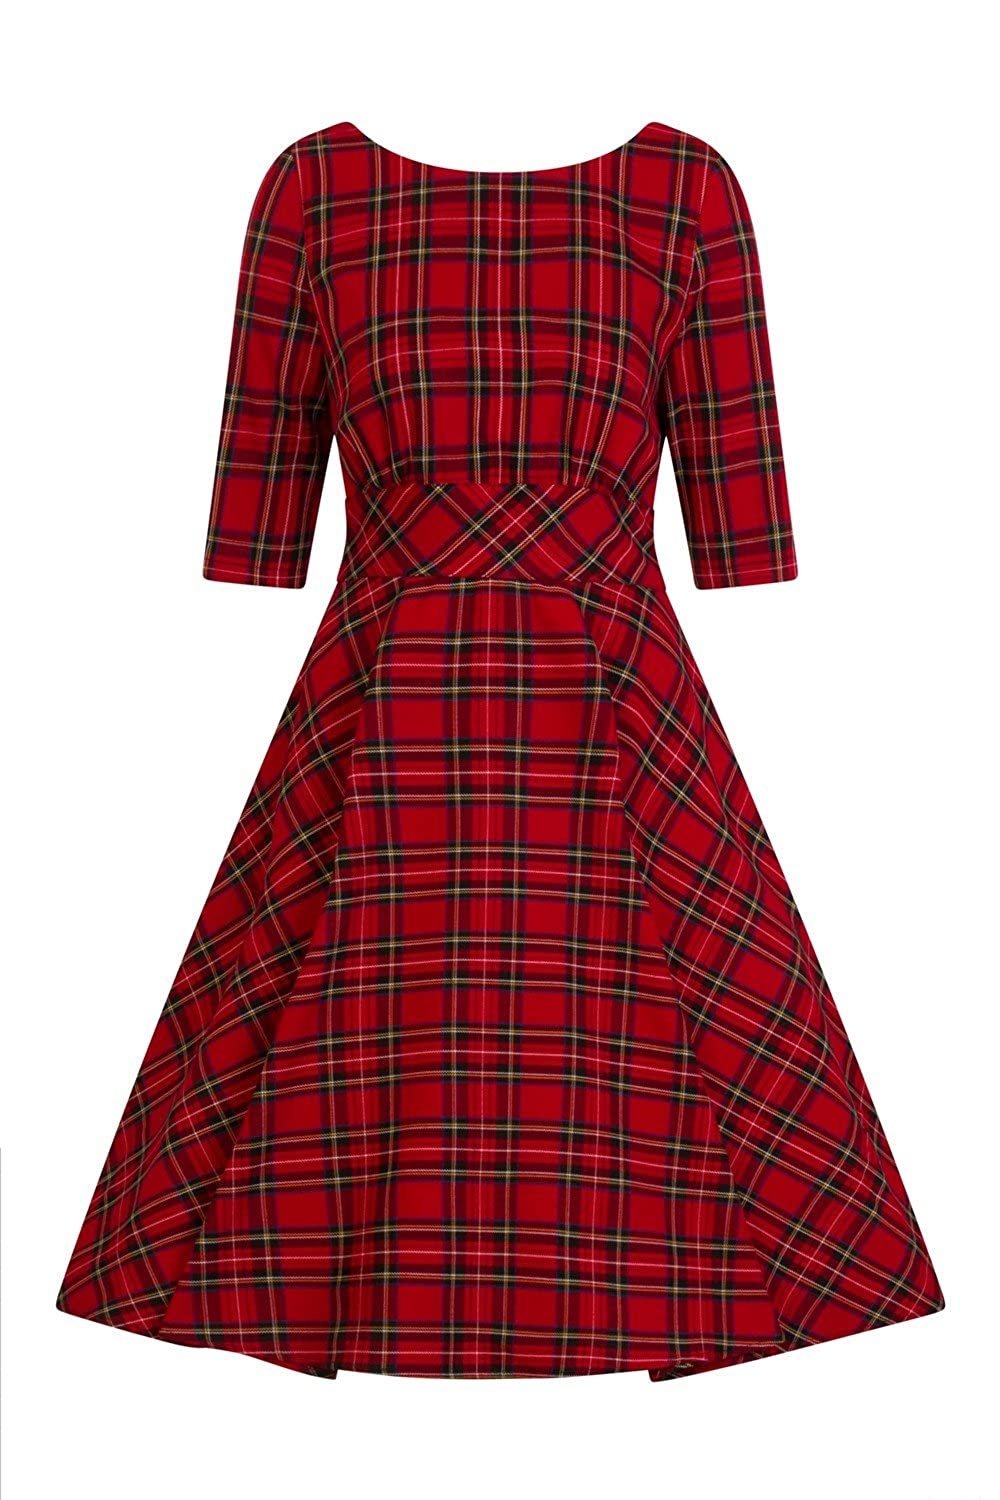 1950s Housewife Dress | 50s Day Dresses Hell Bunny Irvine Tartan 1950s Vintage Retro Dress XS-4XL $72.99 AT vintagedancer.com